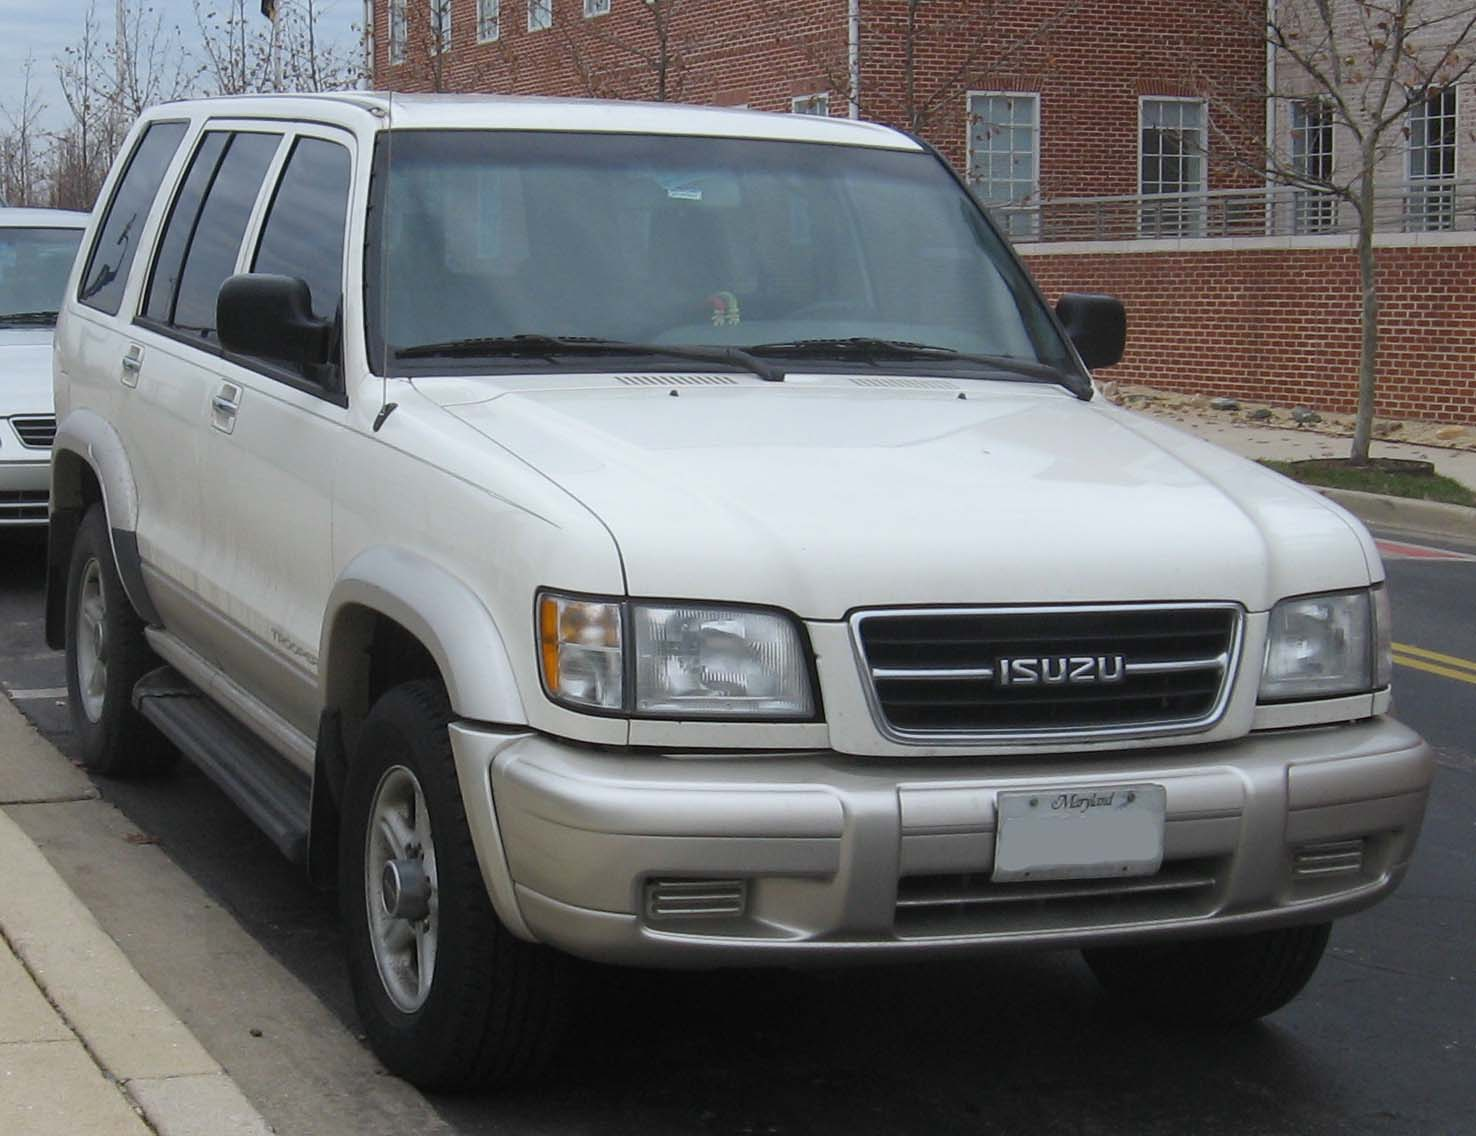 Isuzu trooper 2001 6 isuzu trooper 2001 6